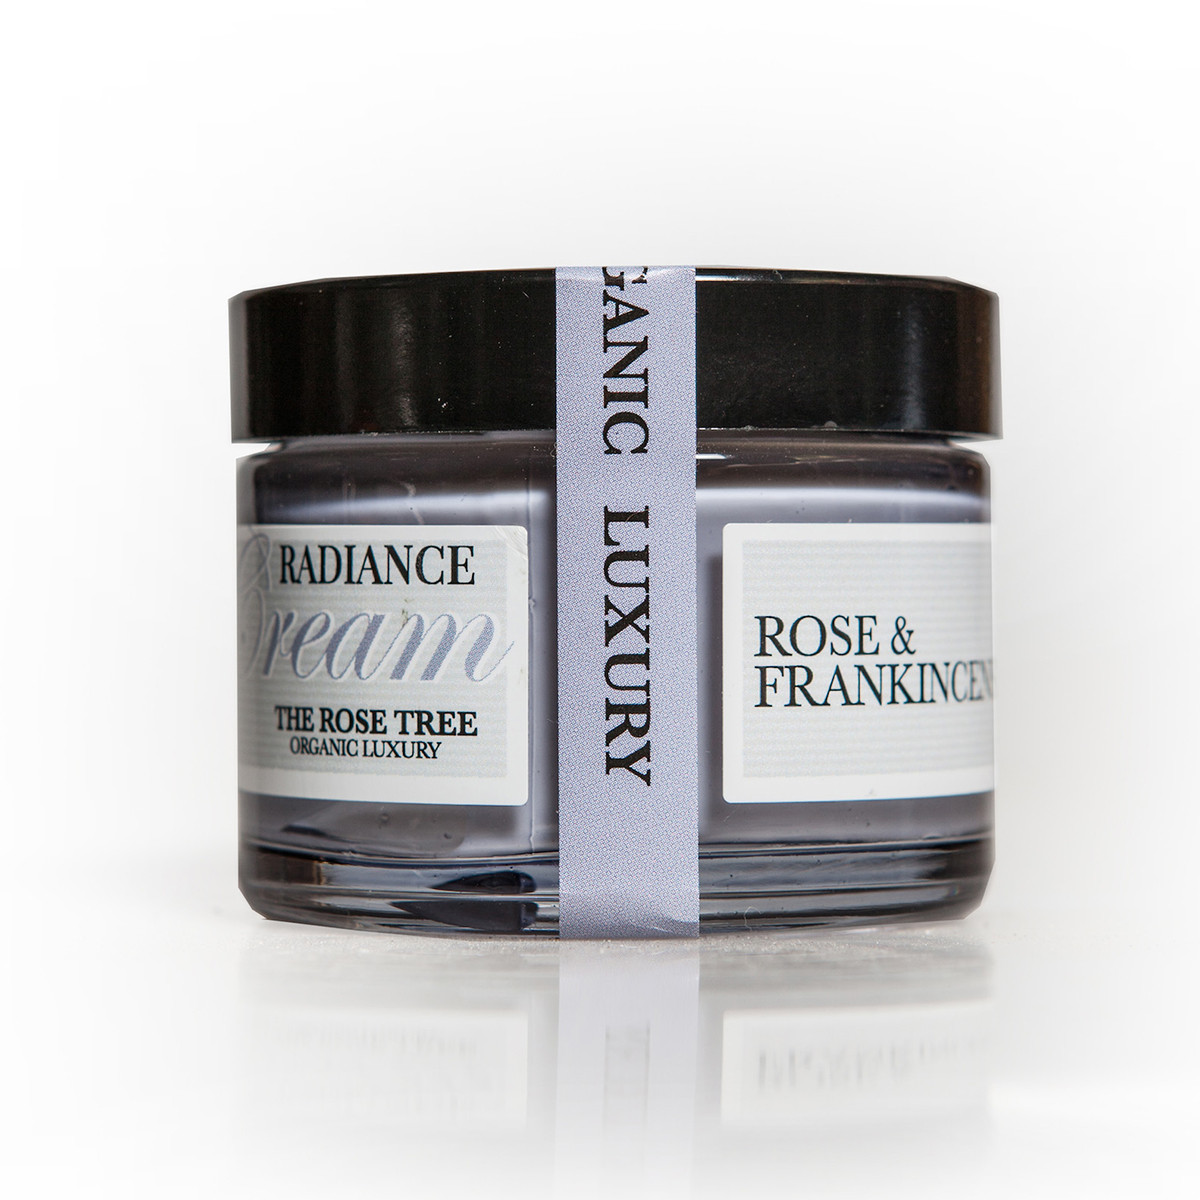 The Rose Tree Rose and Frankinsense brightening radiance cream.